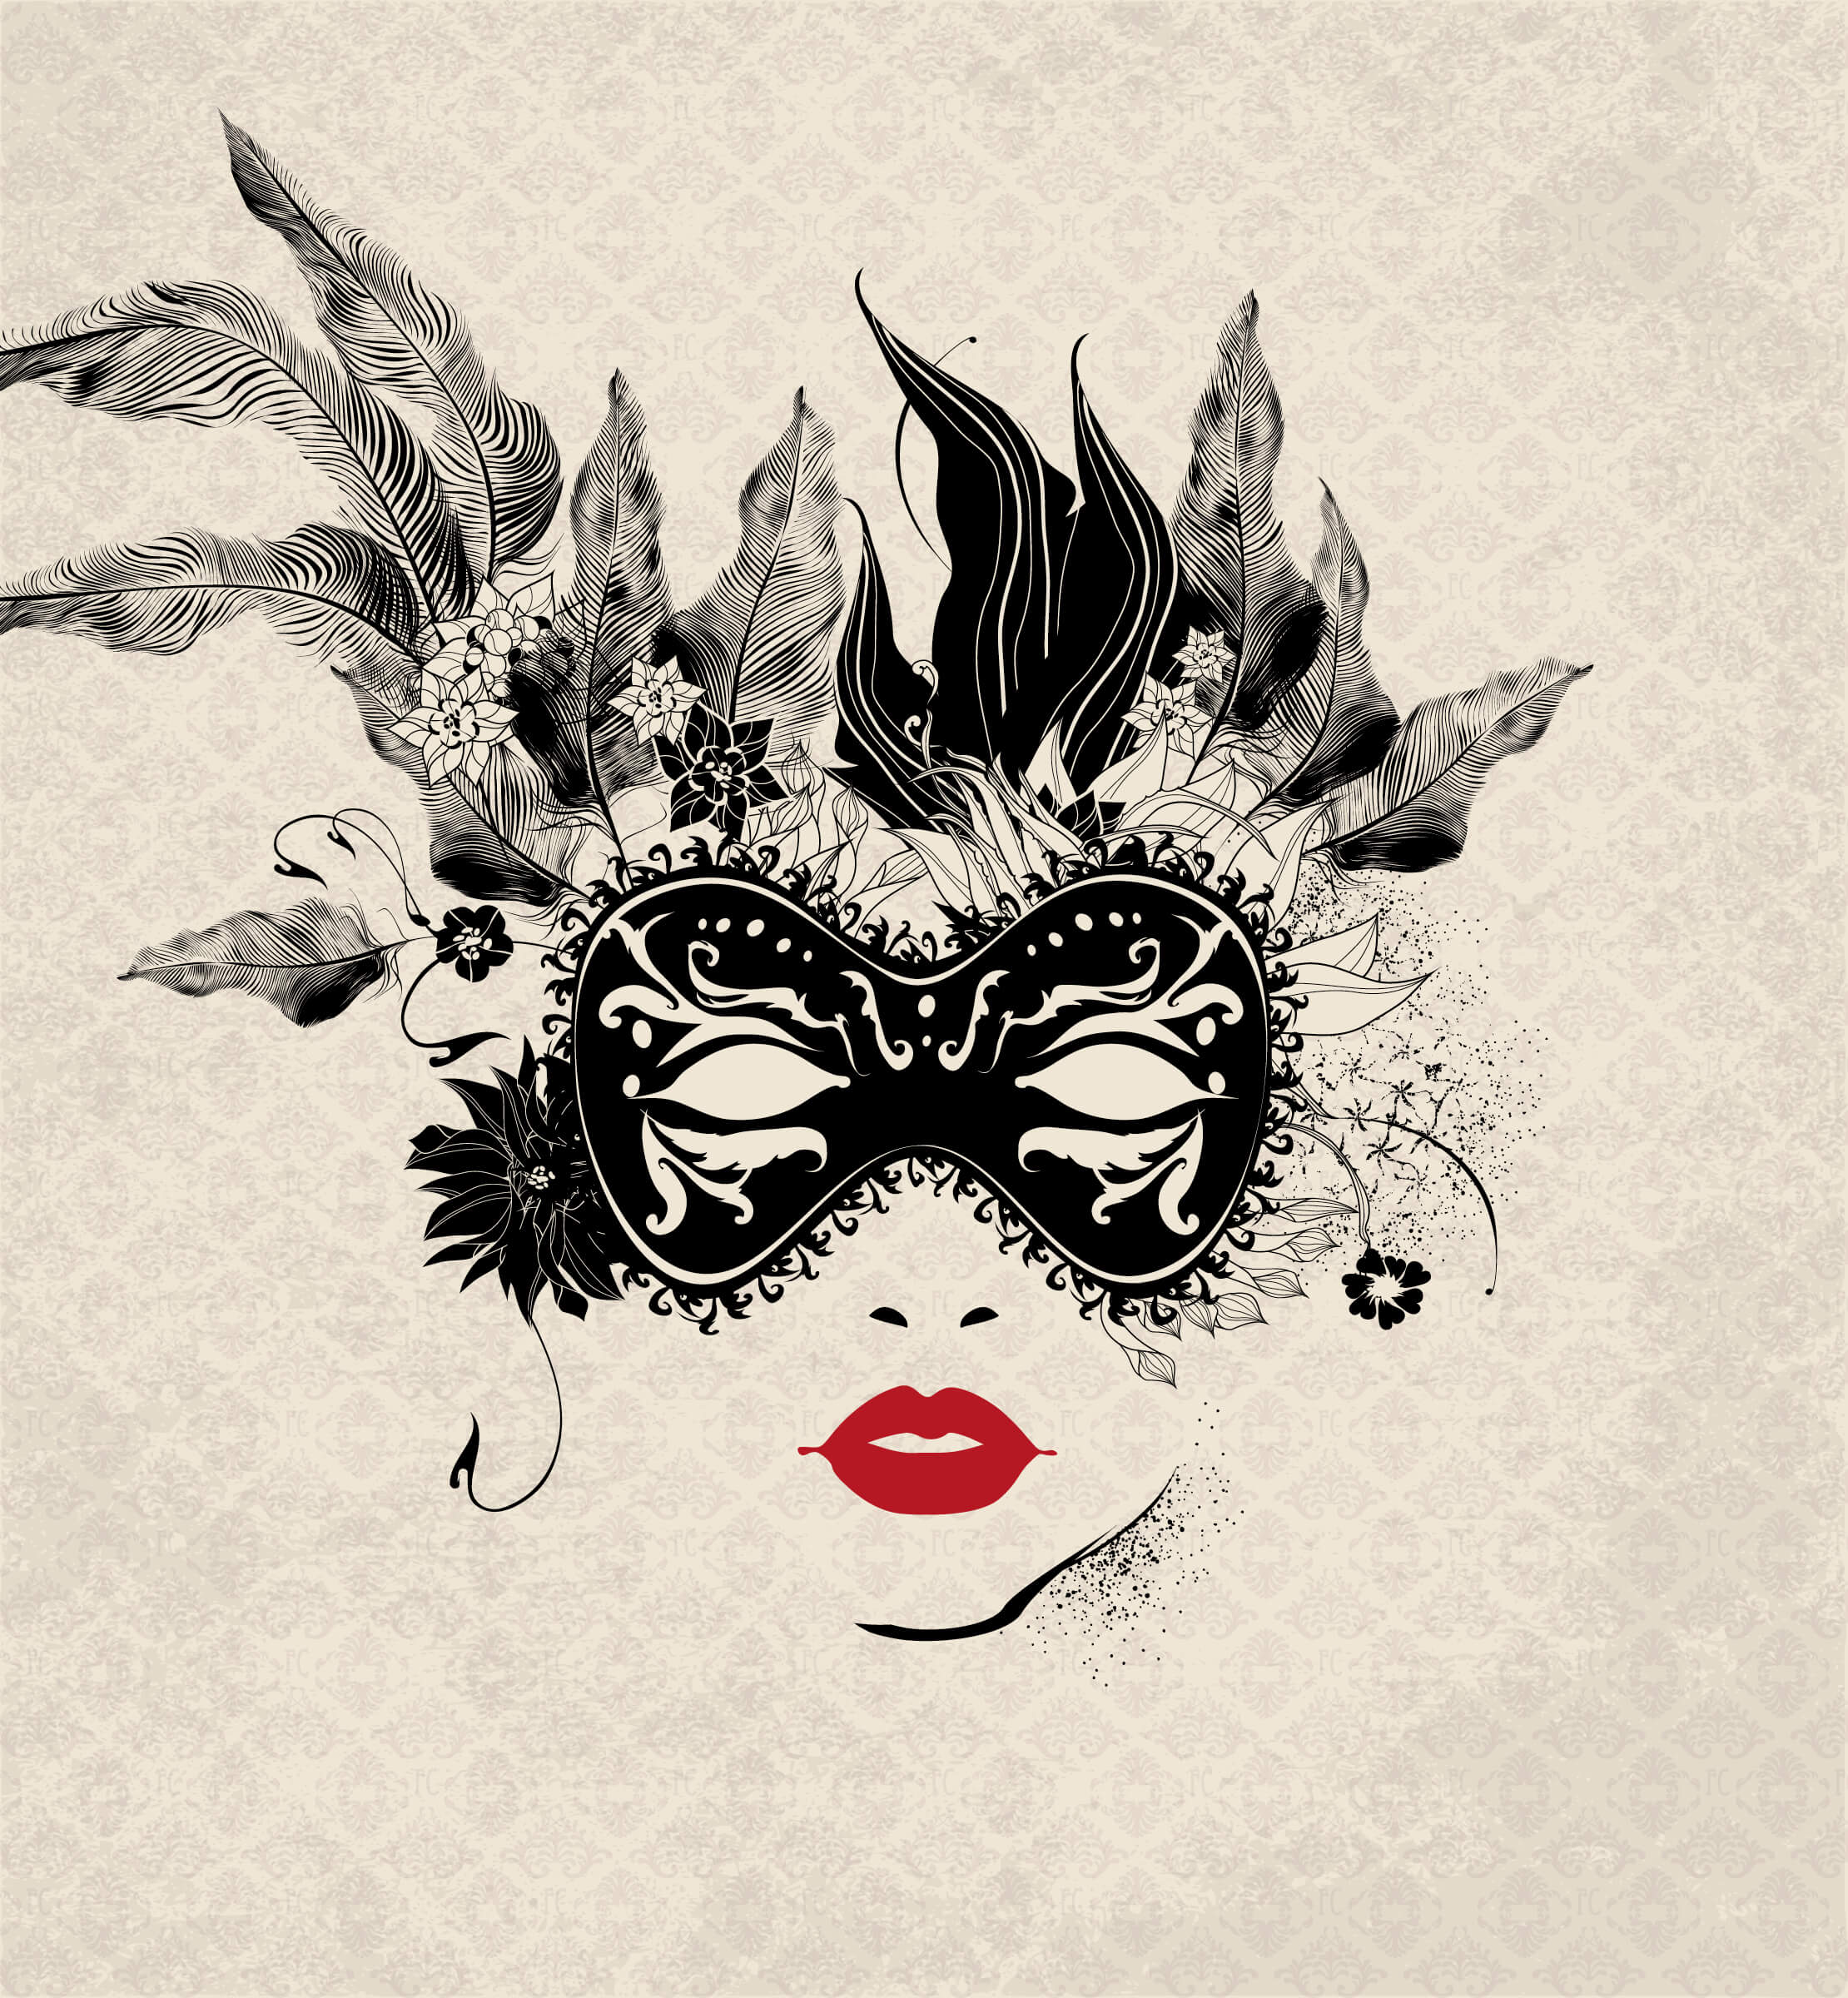 Hand drawn illustration of a masked female face on a beige patterned background, all in black ink apart from her deep red lips